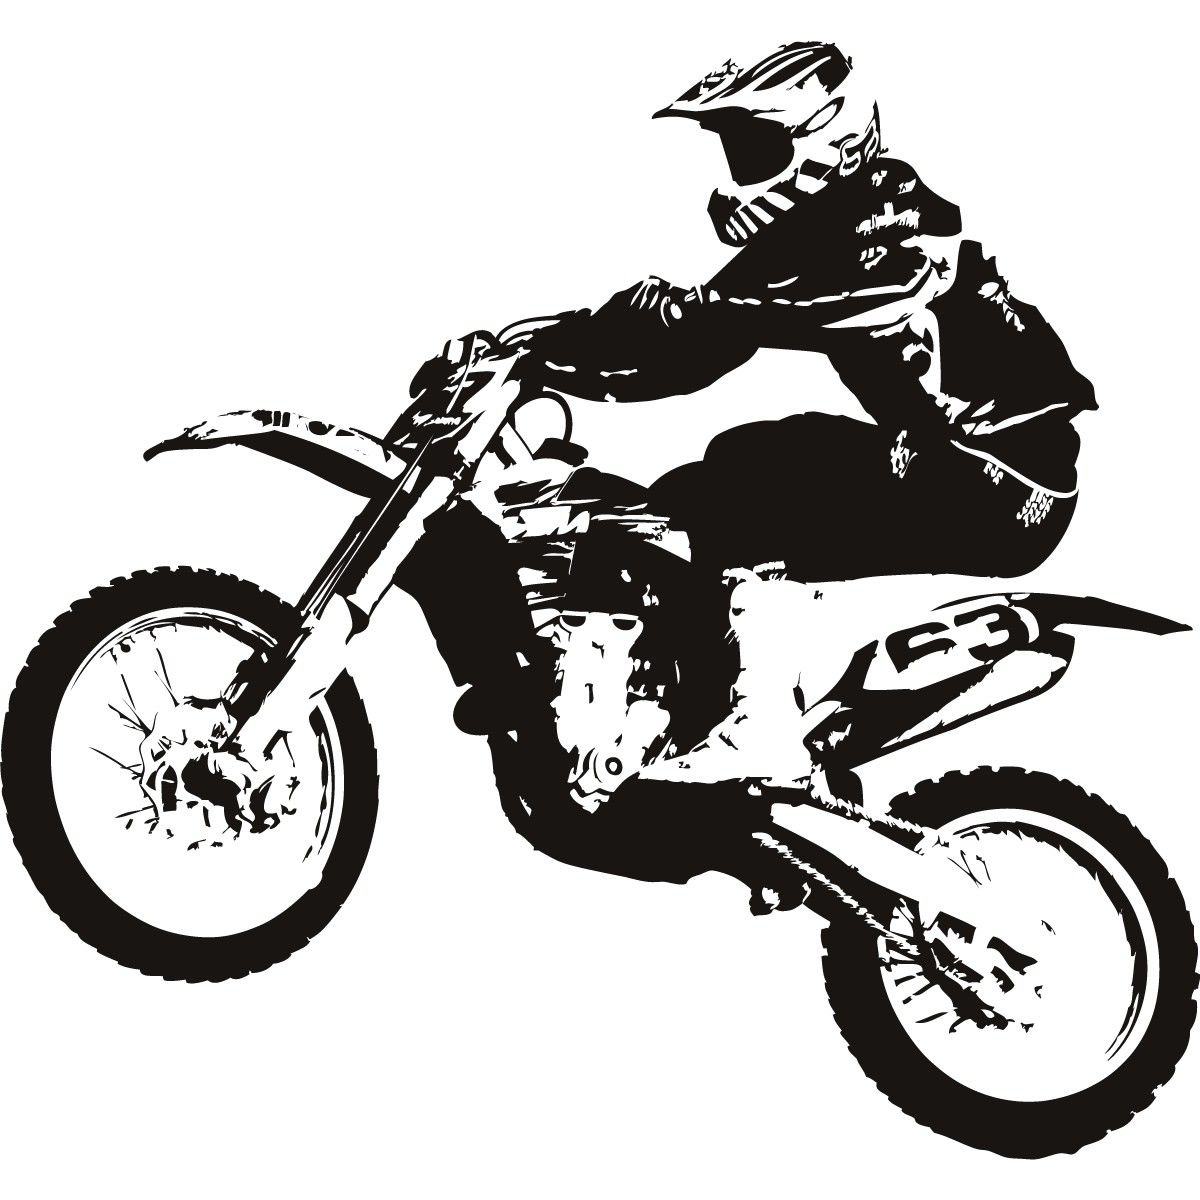 1200x1200 Free Download Motocross Bike Clipart For Your Creation. Motor